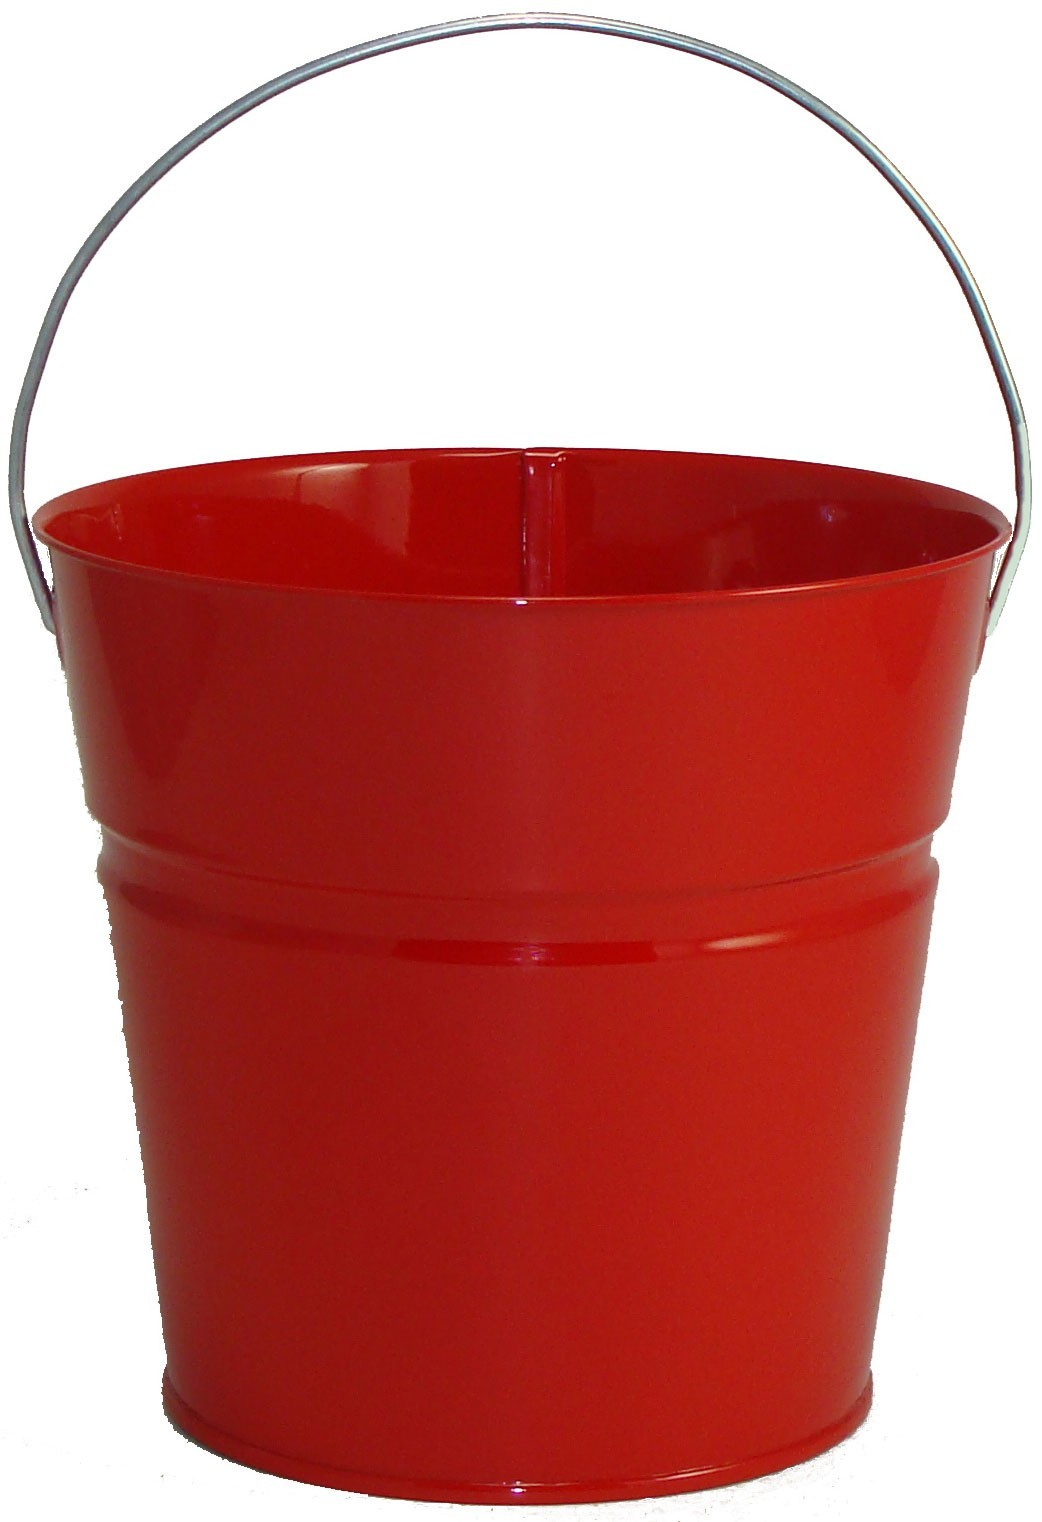 2 Qt Powder Coated Bucket-Candy Apple Red - 003